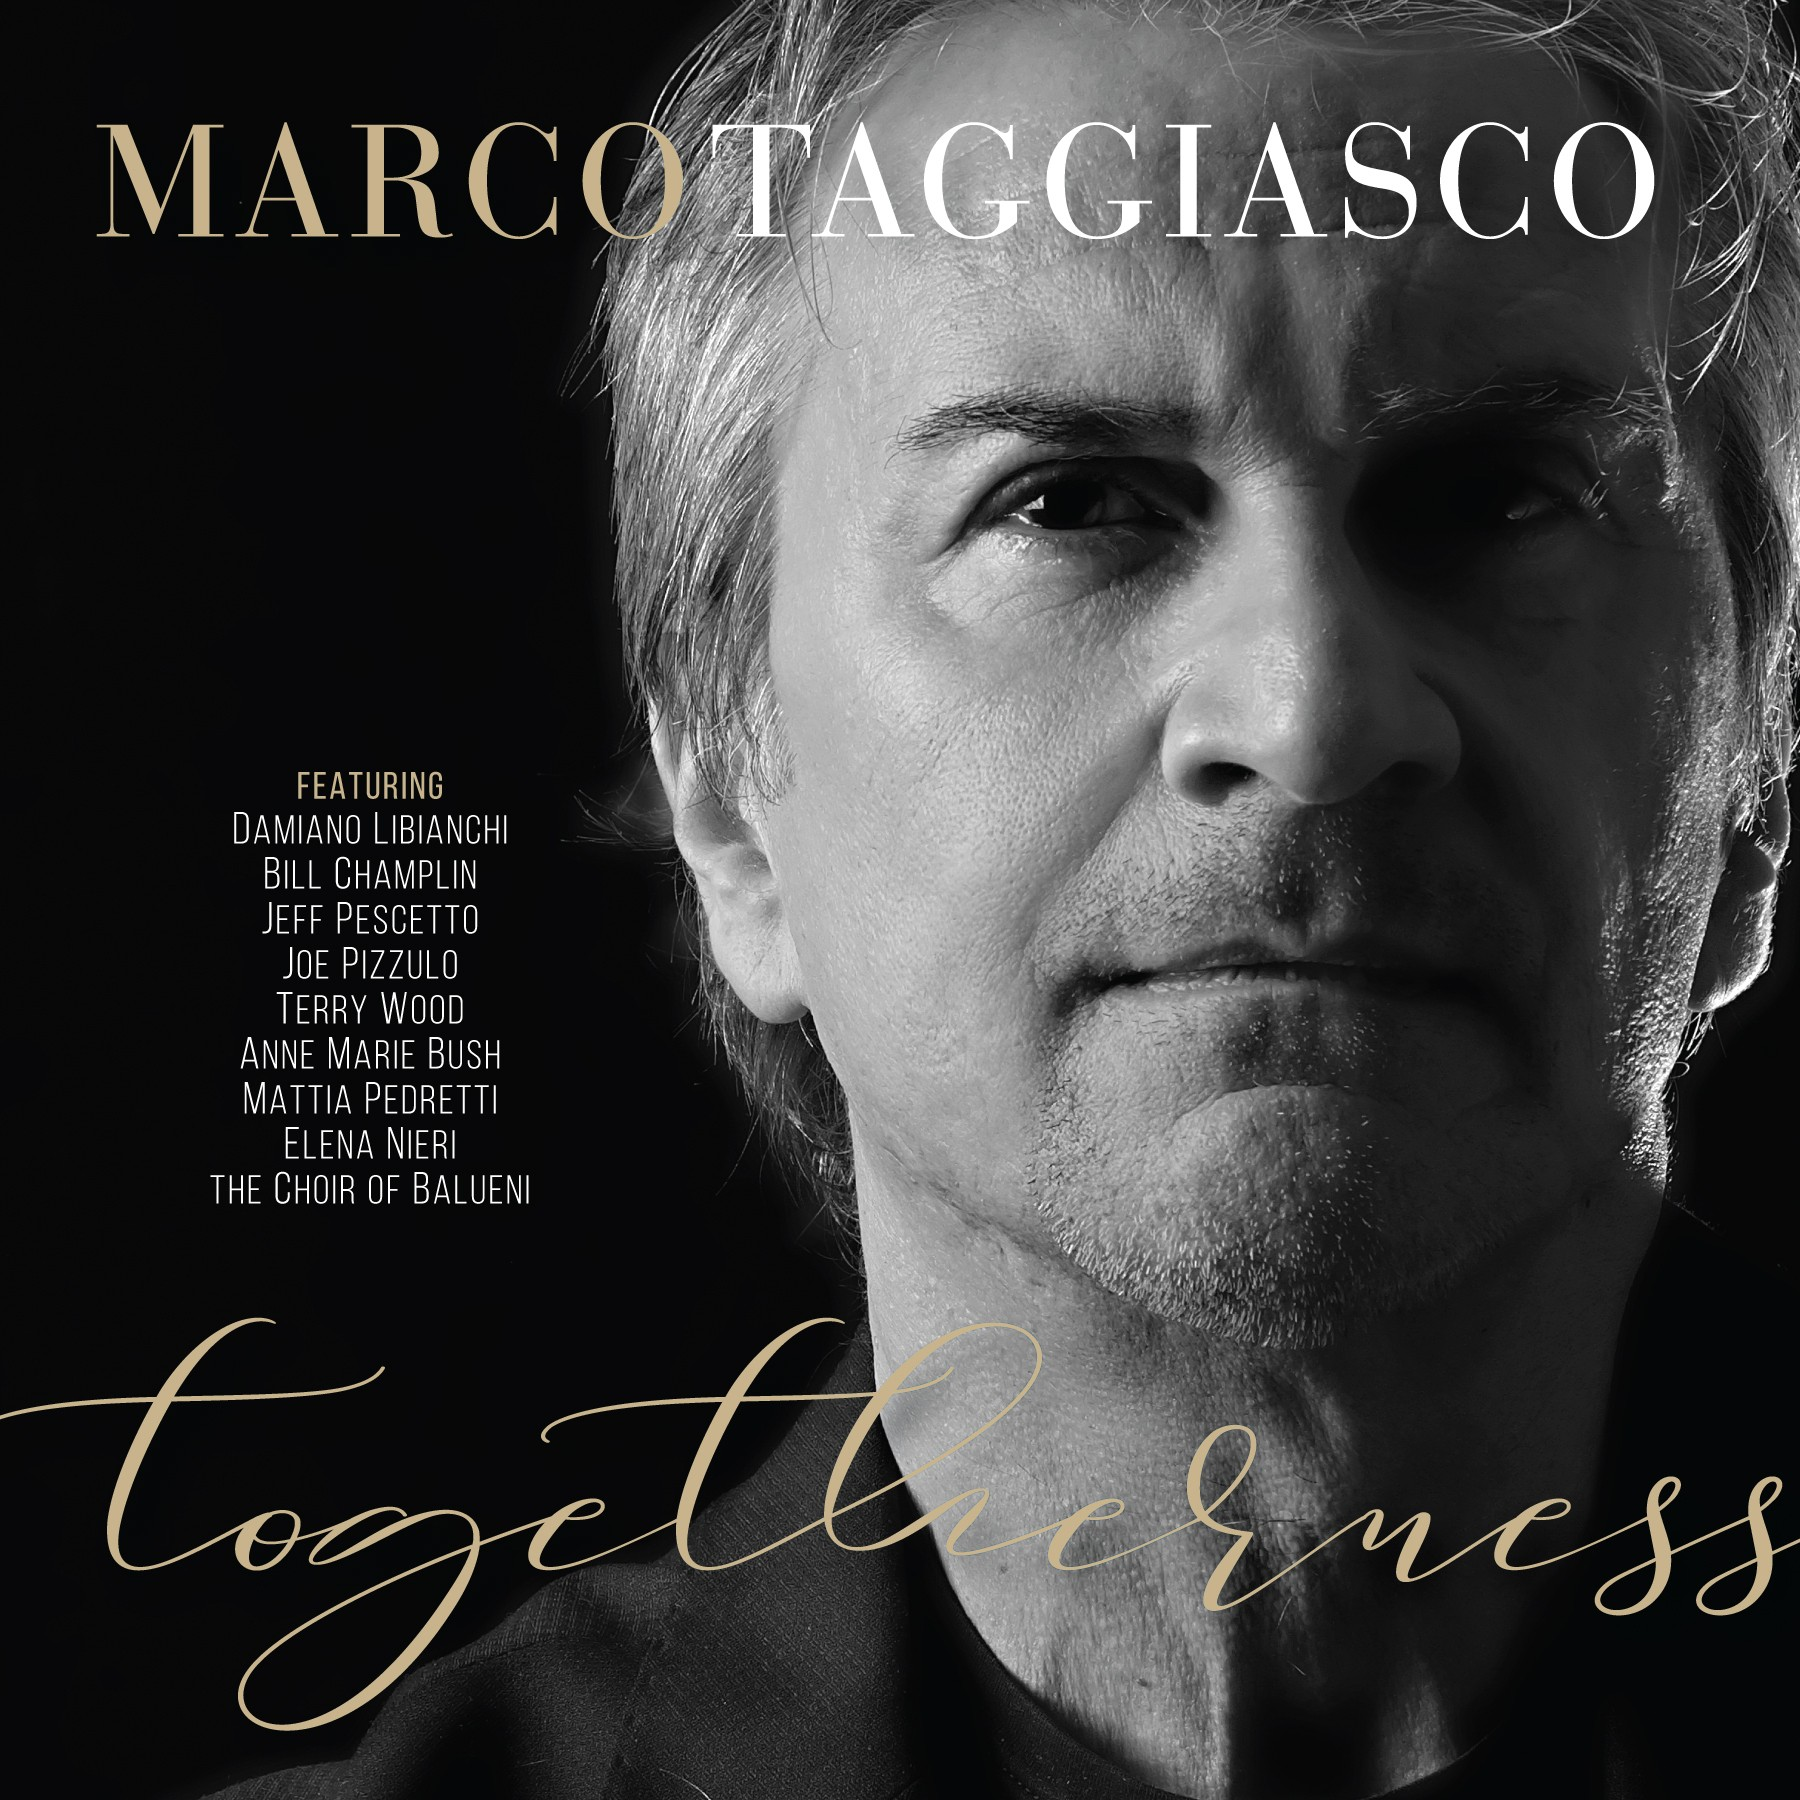 TAGGIASCO, MARCO - Togetherness